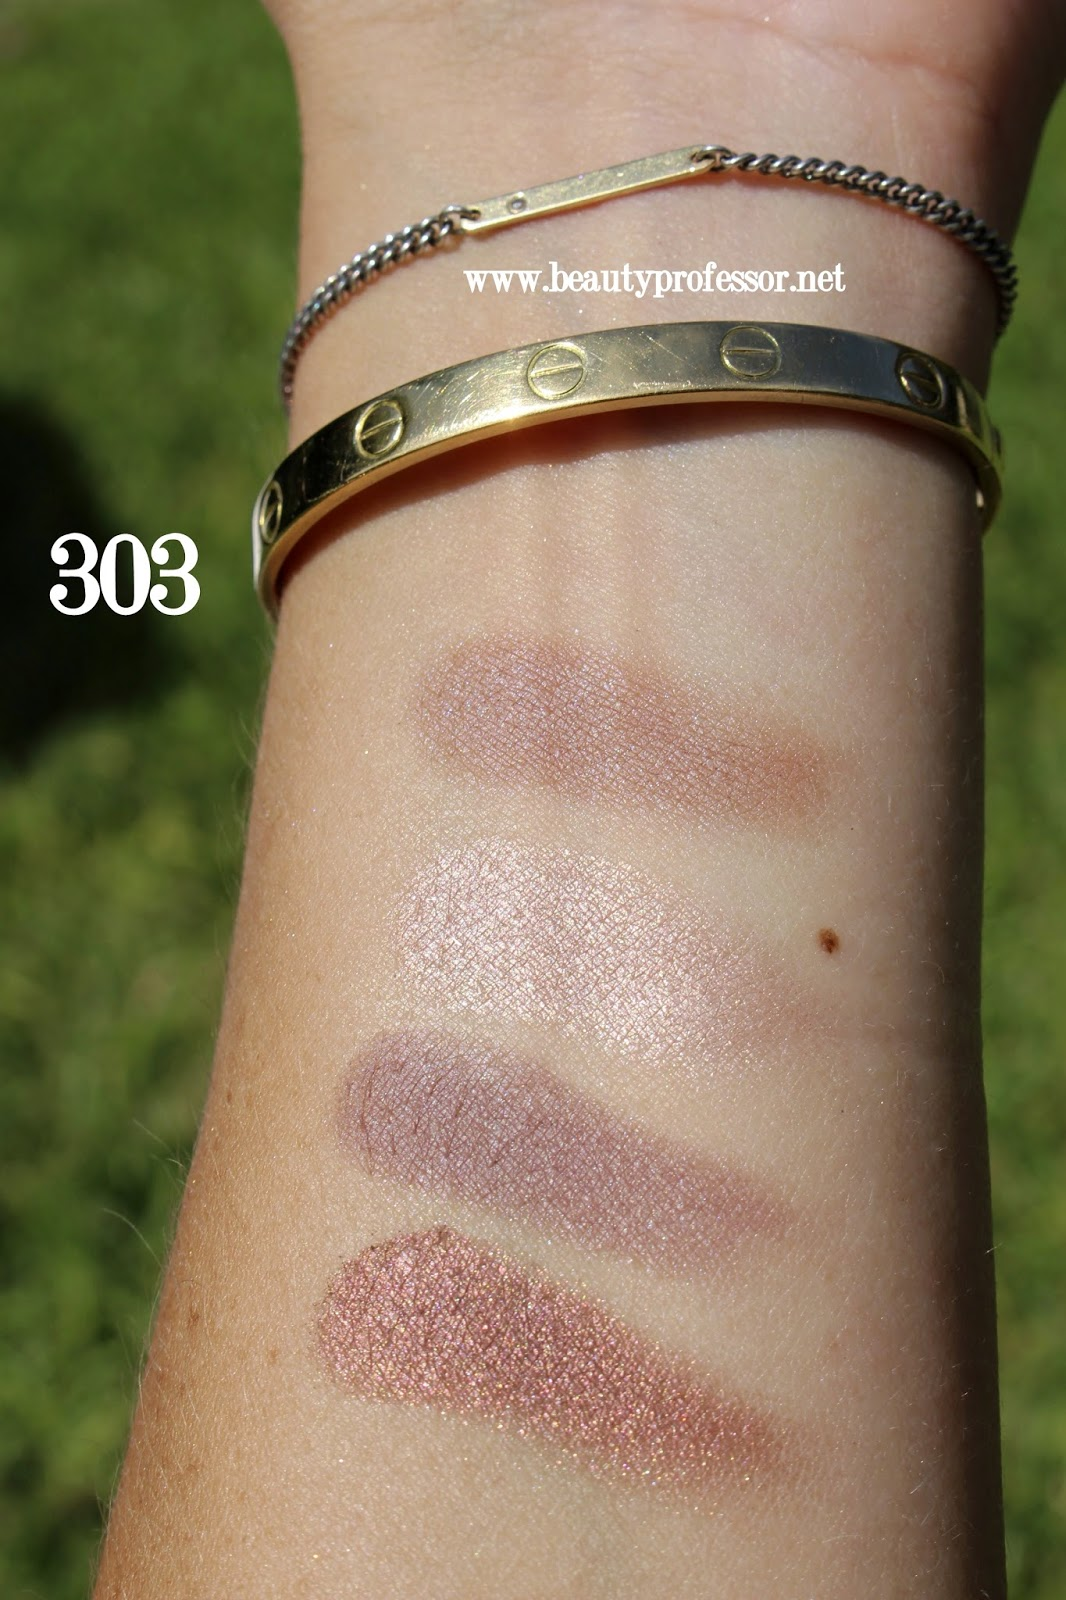 Cle de peau eye color quad 303 baby universe swatches